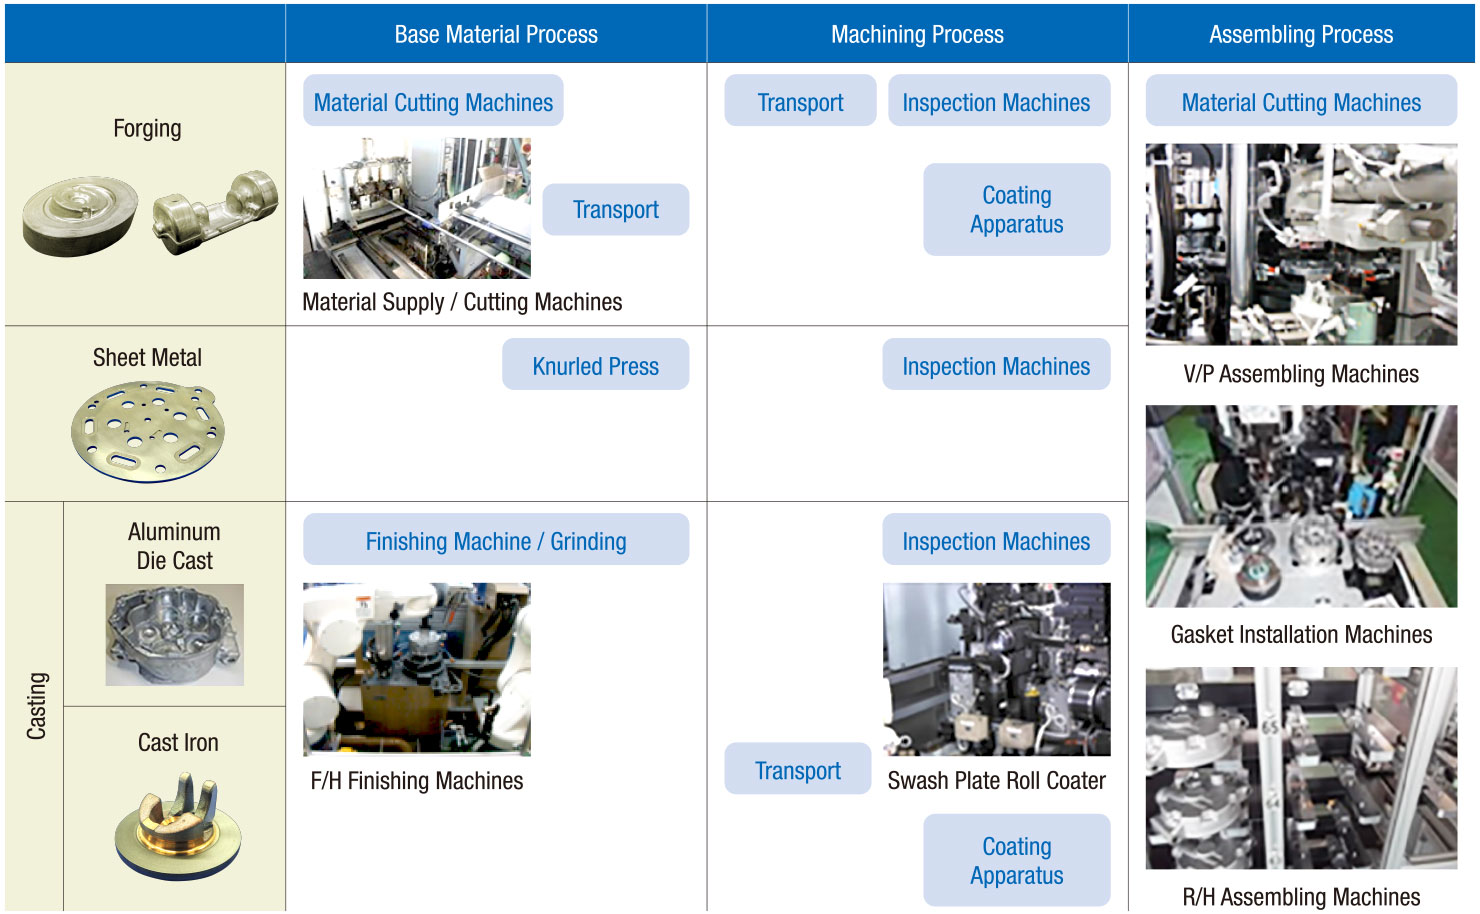 Automatic assembly machines with inspection function